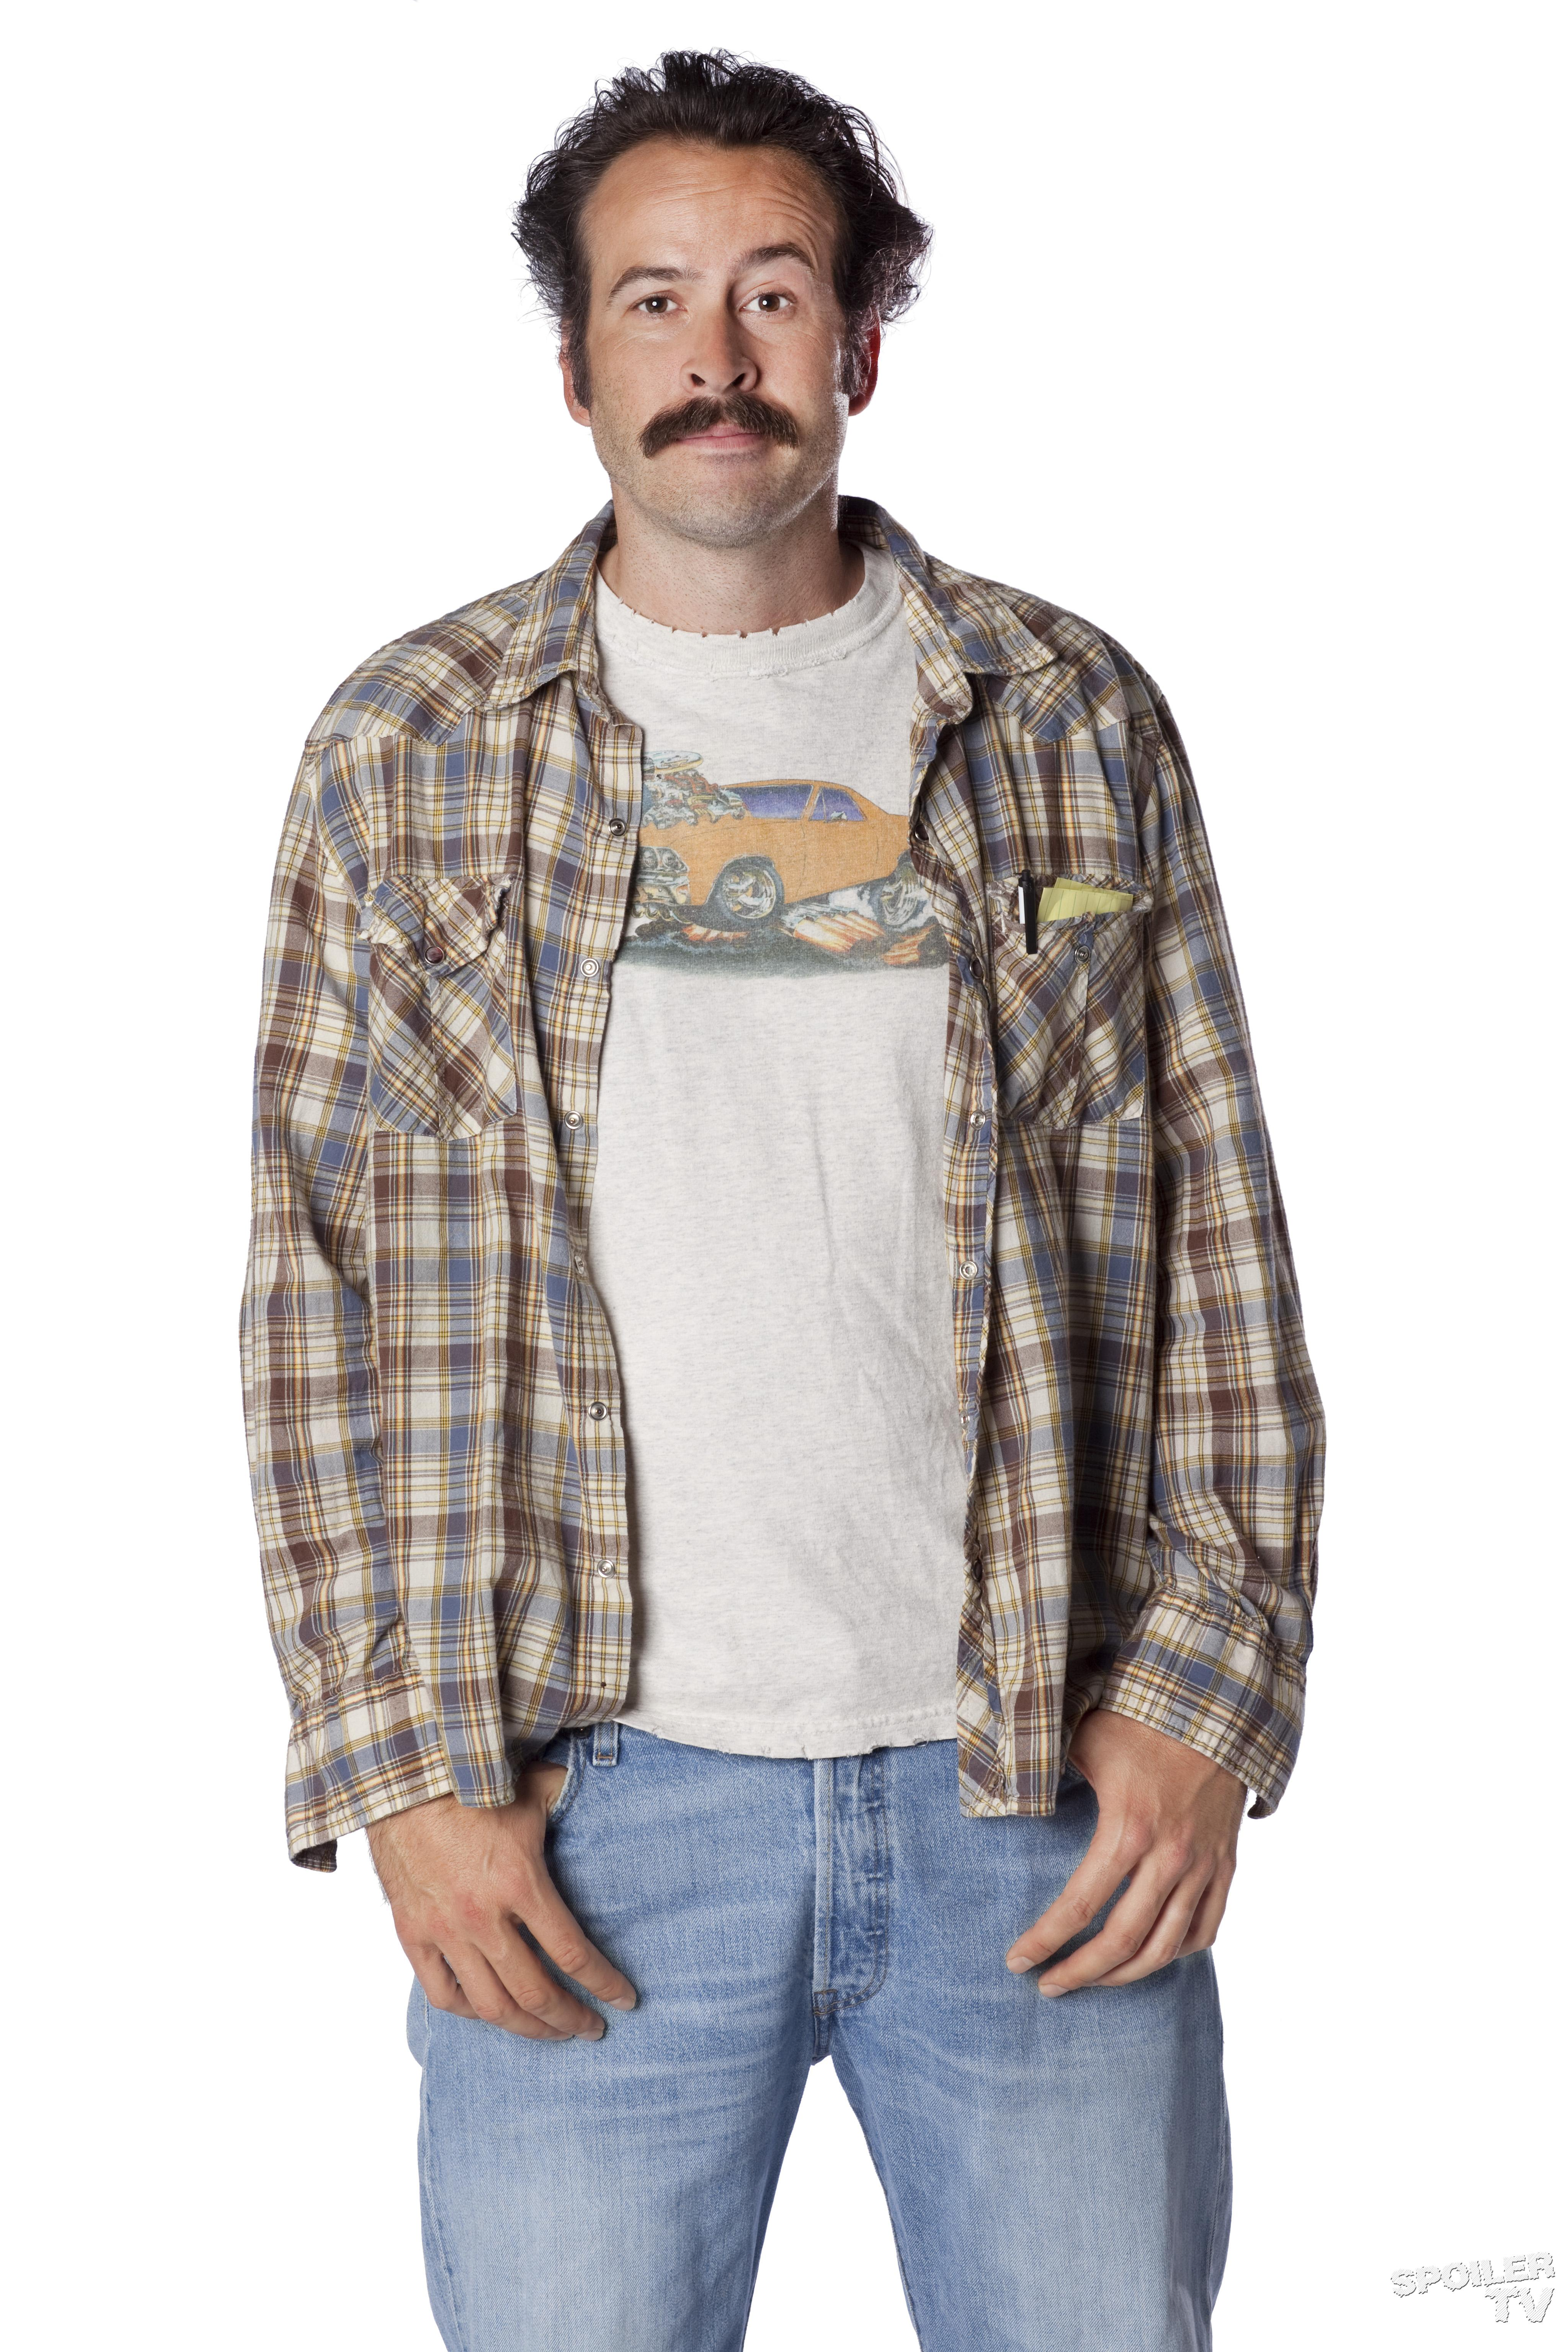 Jason Lee as Earl Hickey [Season 4]